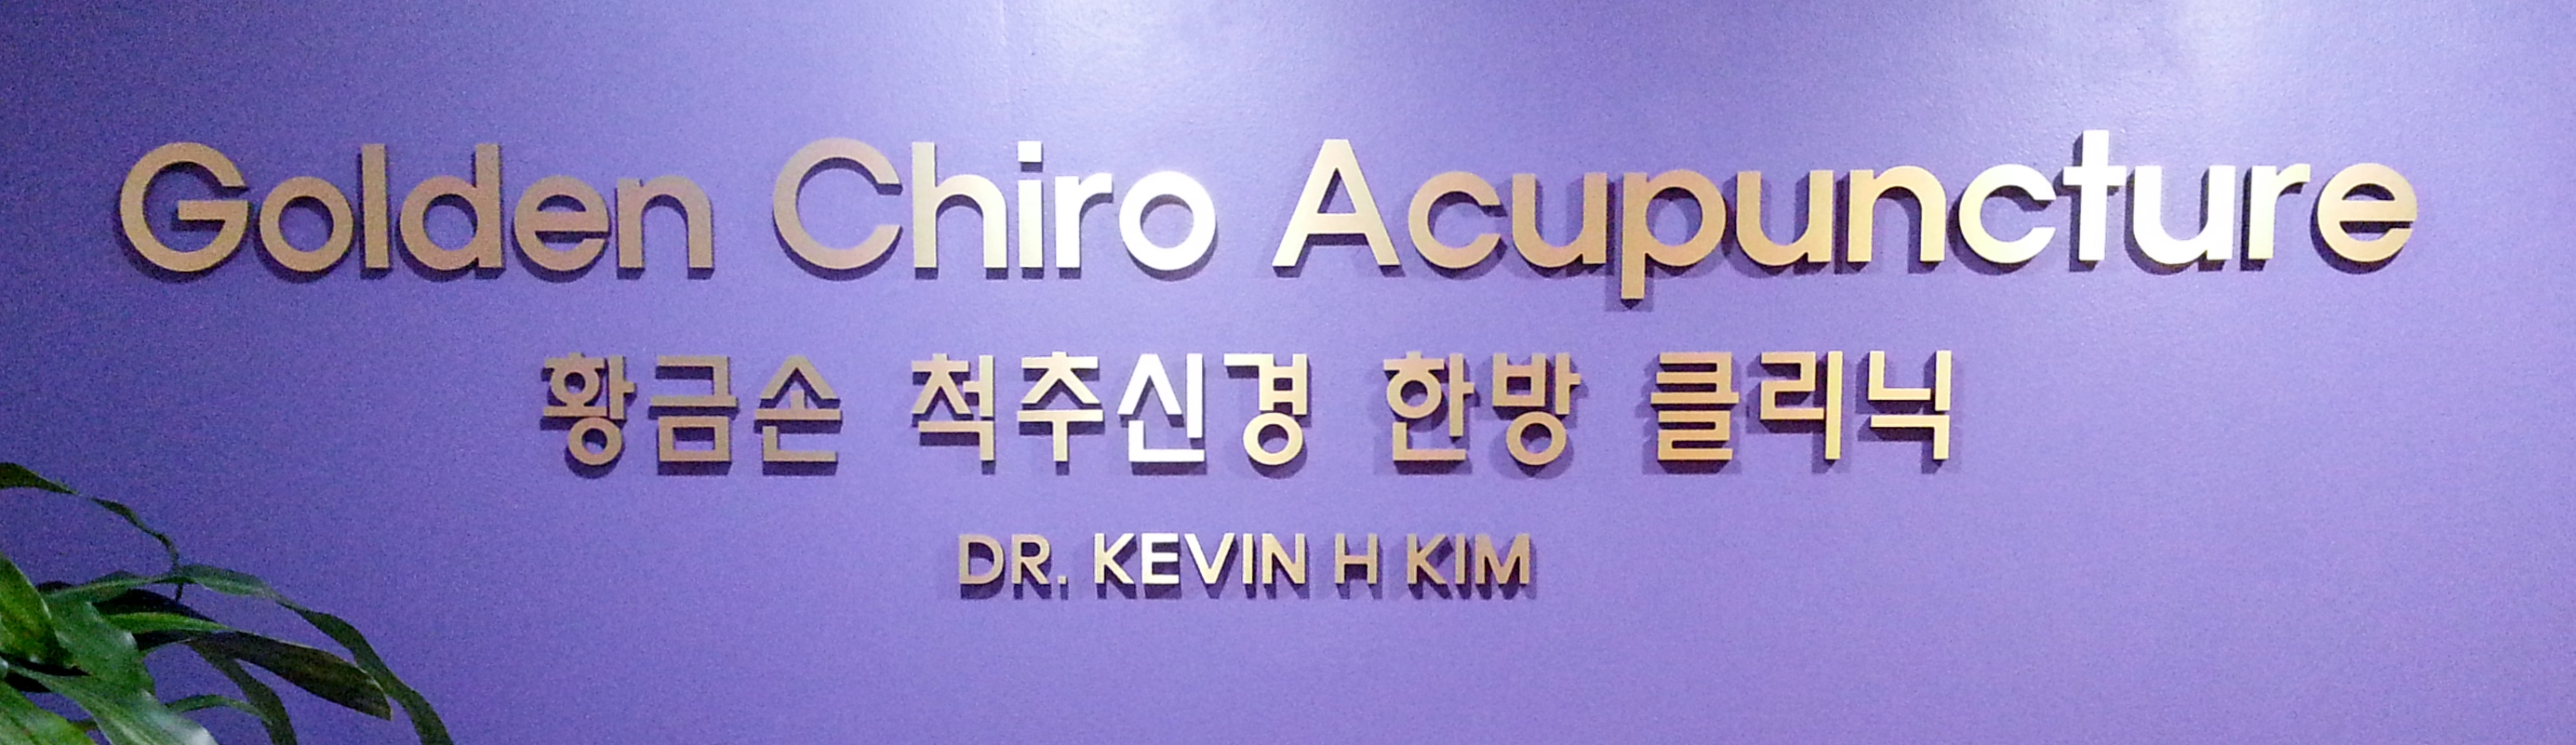 Chiropractic and Acupuncture Sign